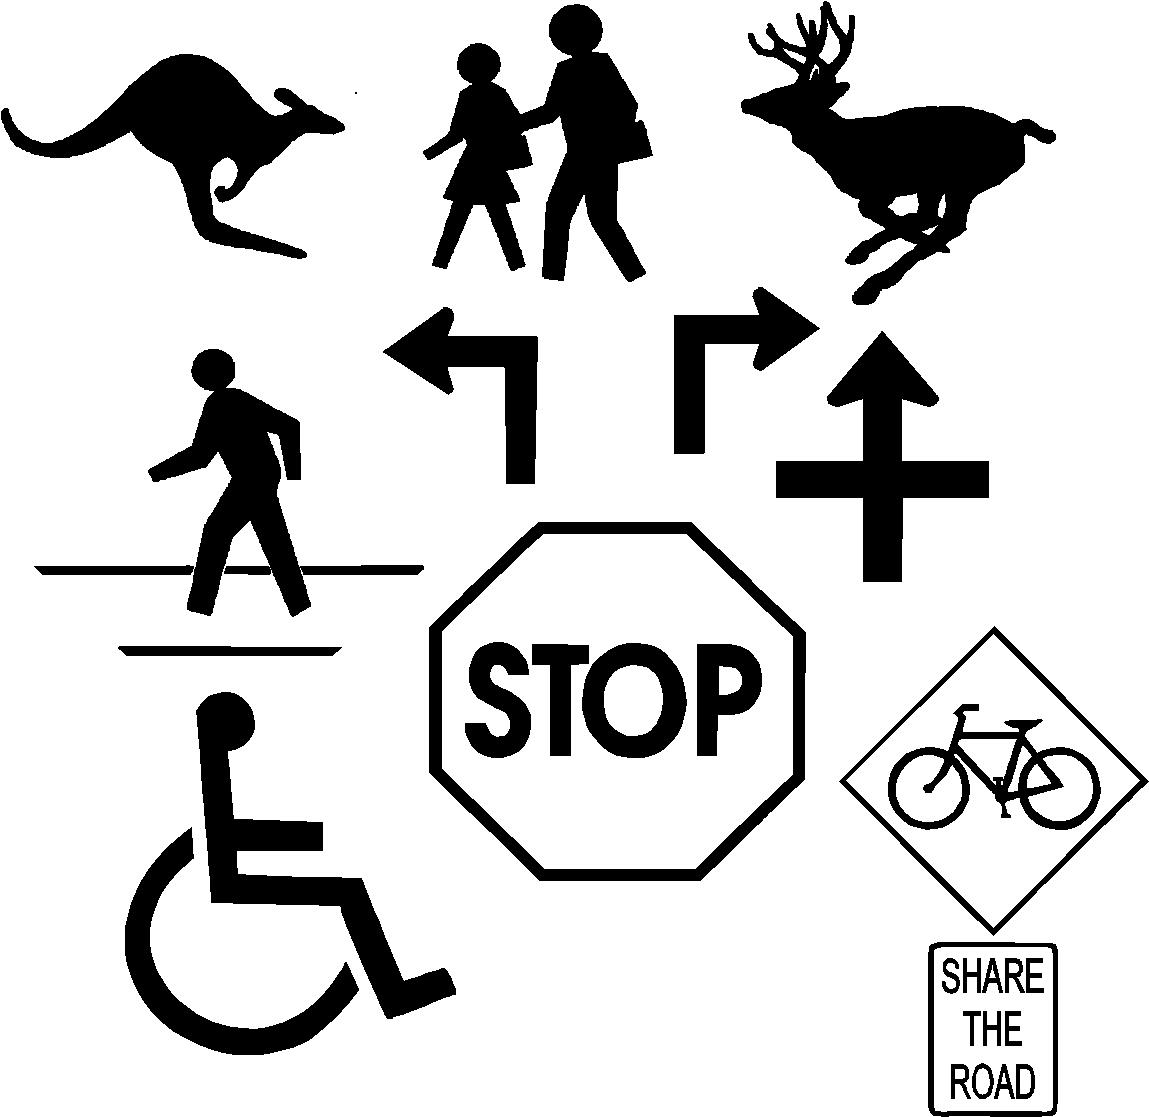 1149x1117 Free Street Stop Sign And Handicap Logo Vector Clip Art For